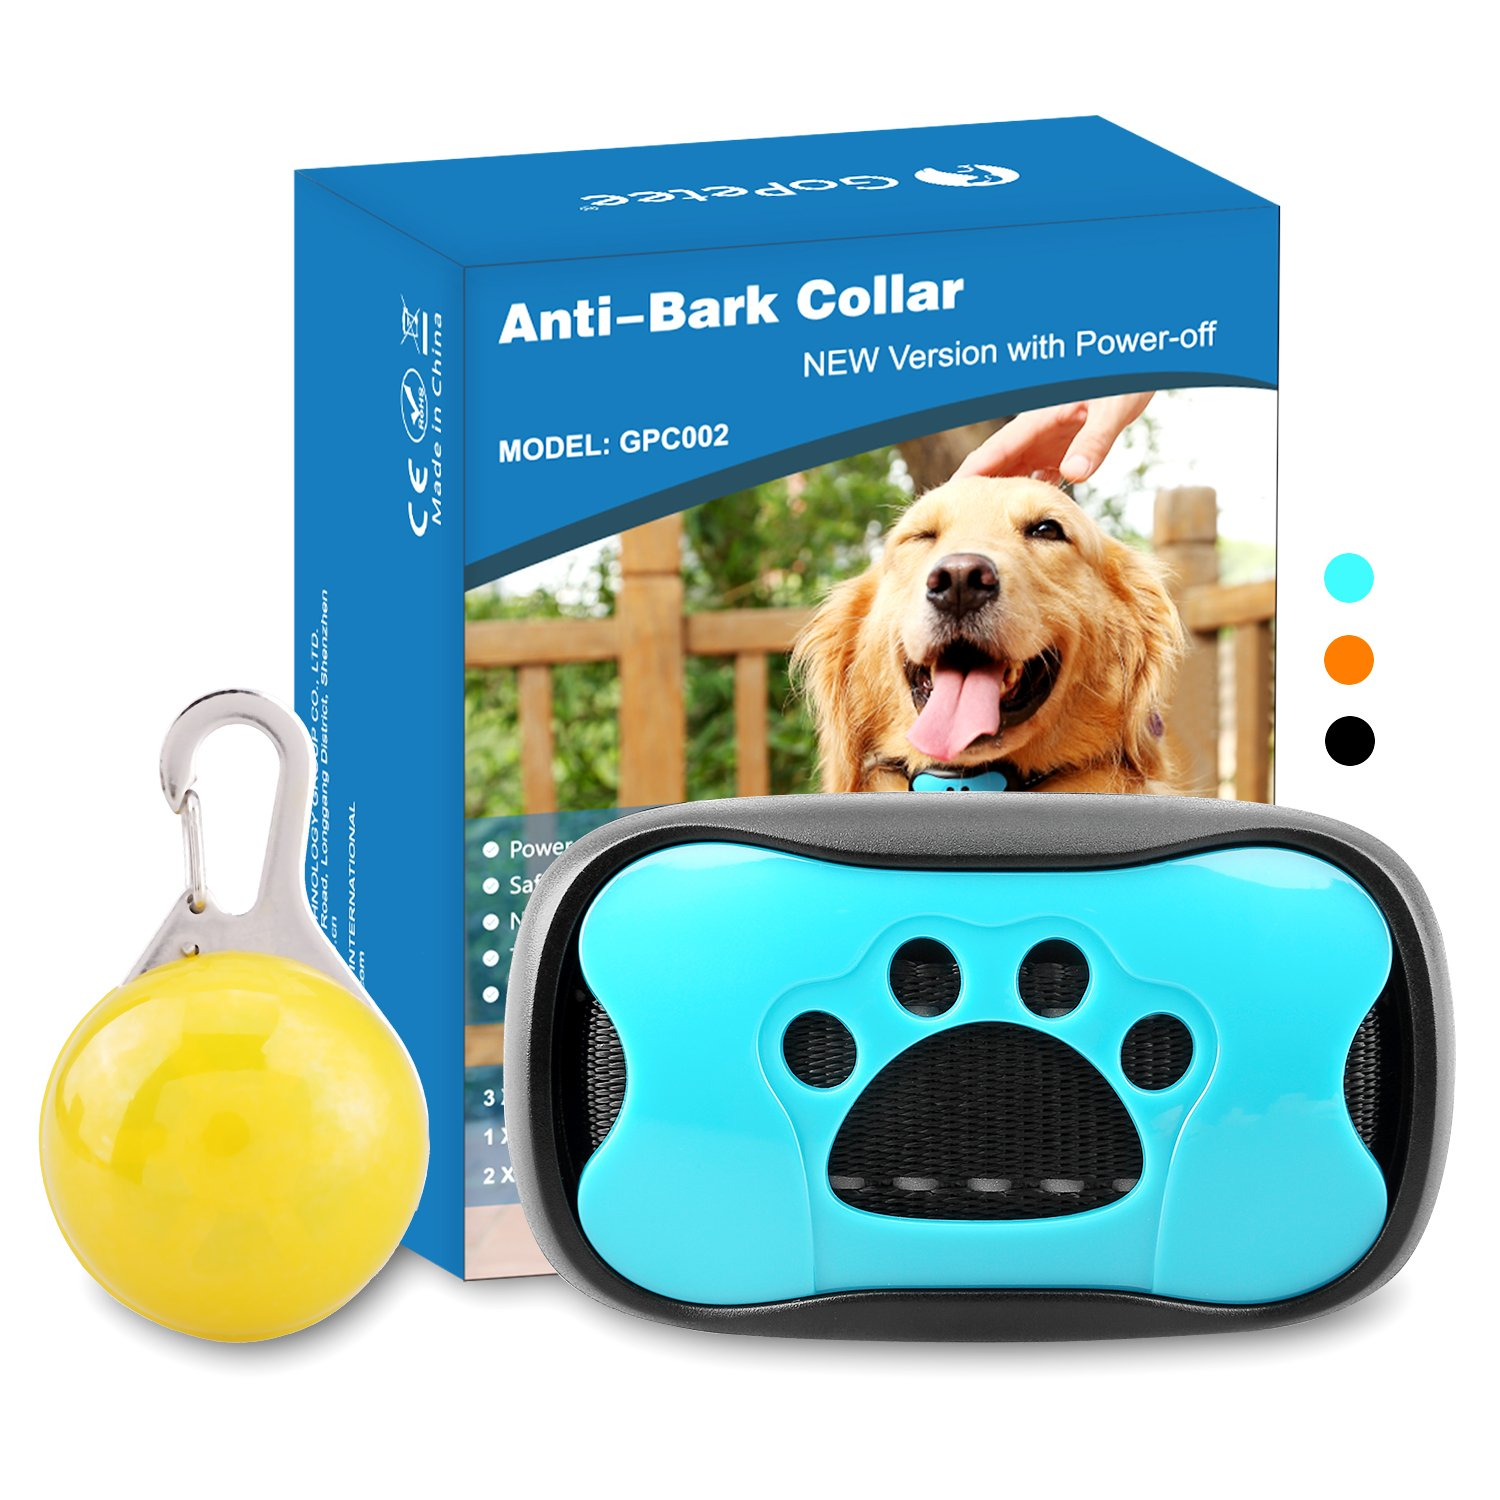 GoPetee Dog Anti Bark Collar Training with free LED light 7 Adjustable Levels No Bark Stop Puppy Barking Collar with Power On Off Auto Vibration Spare Batteries and Paw Shell Replacement Included for Small, Medium and Large Dogs